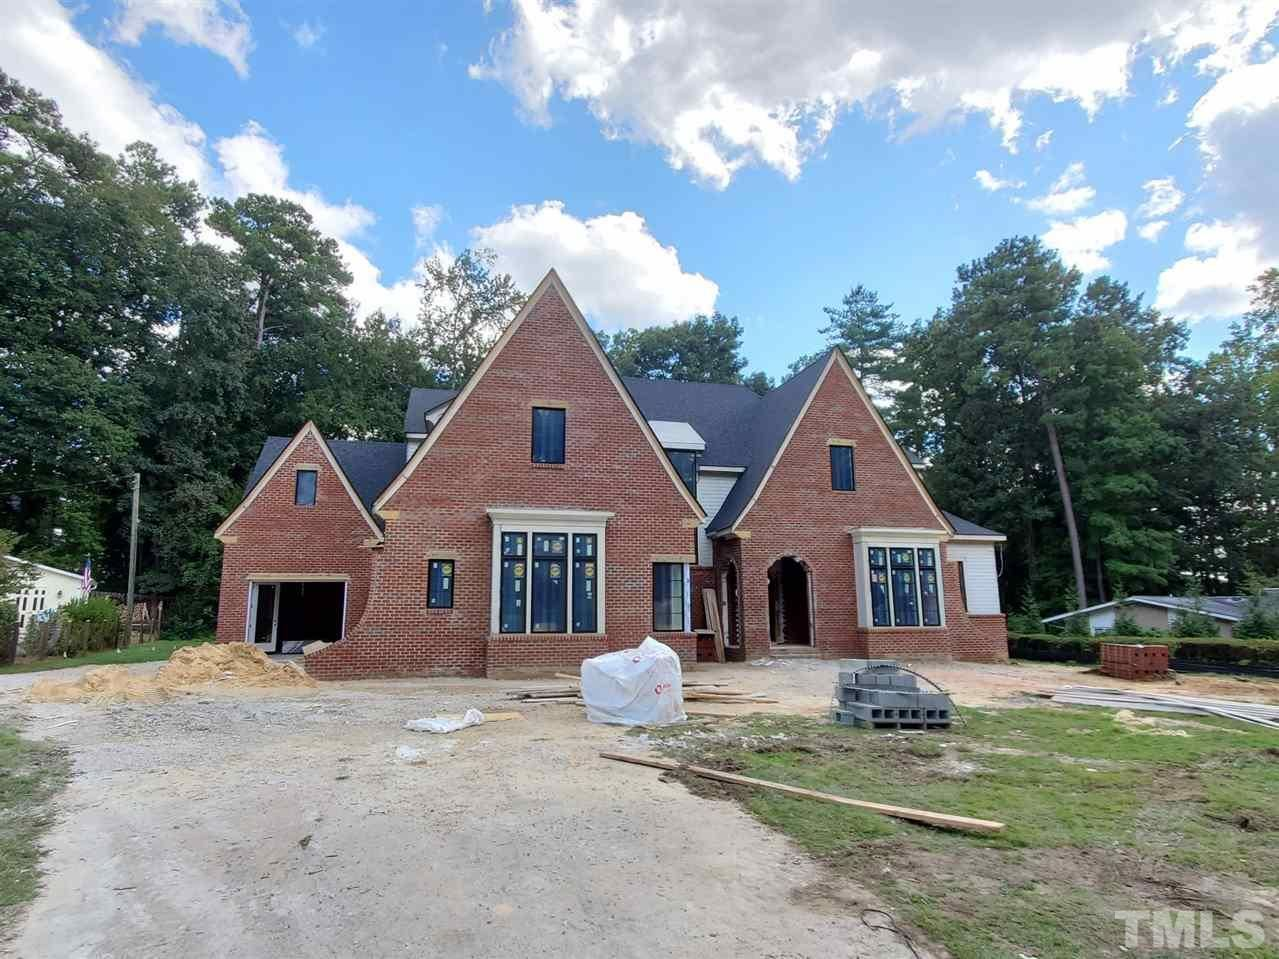 4104 Windsor Place, Raleigh, NC 27609 - MLS#: 2286524